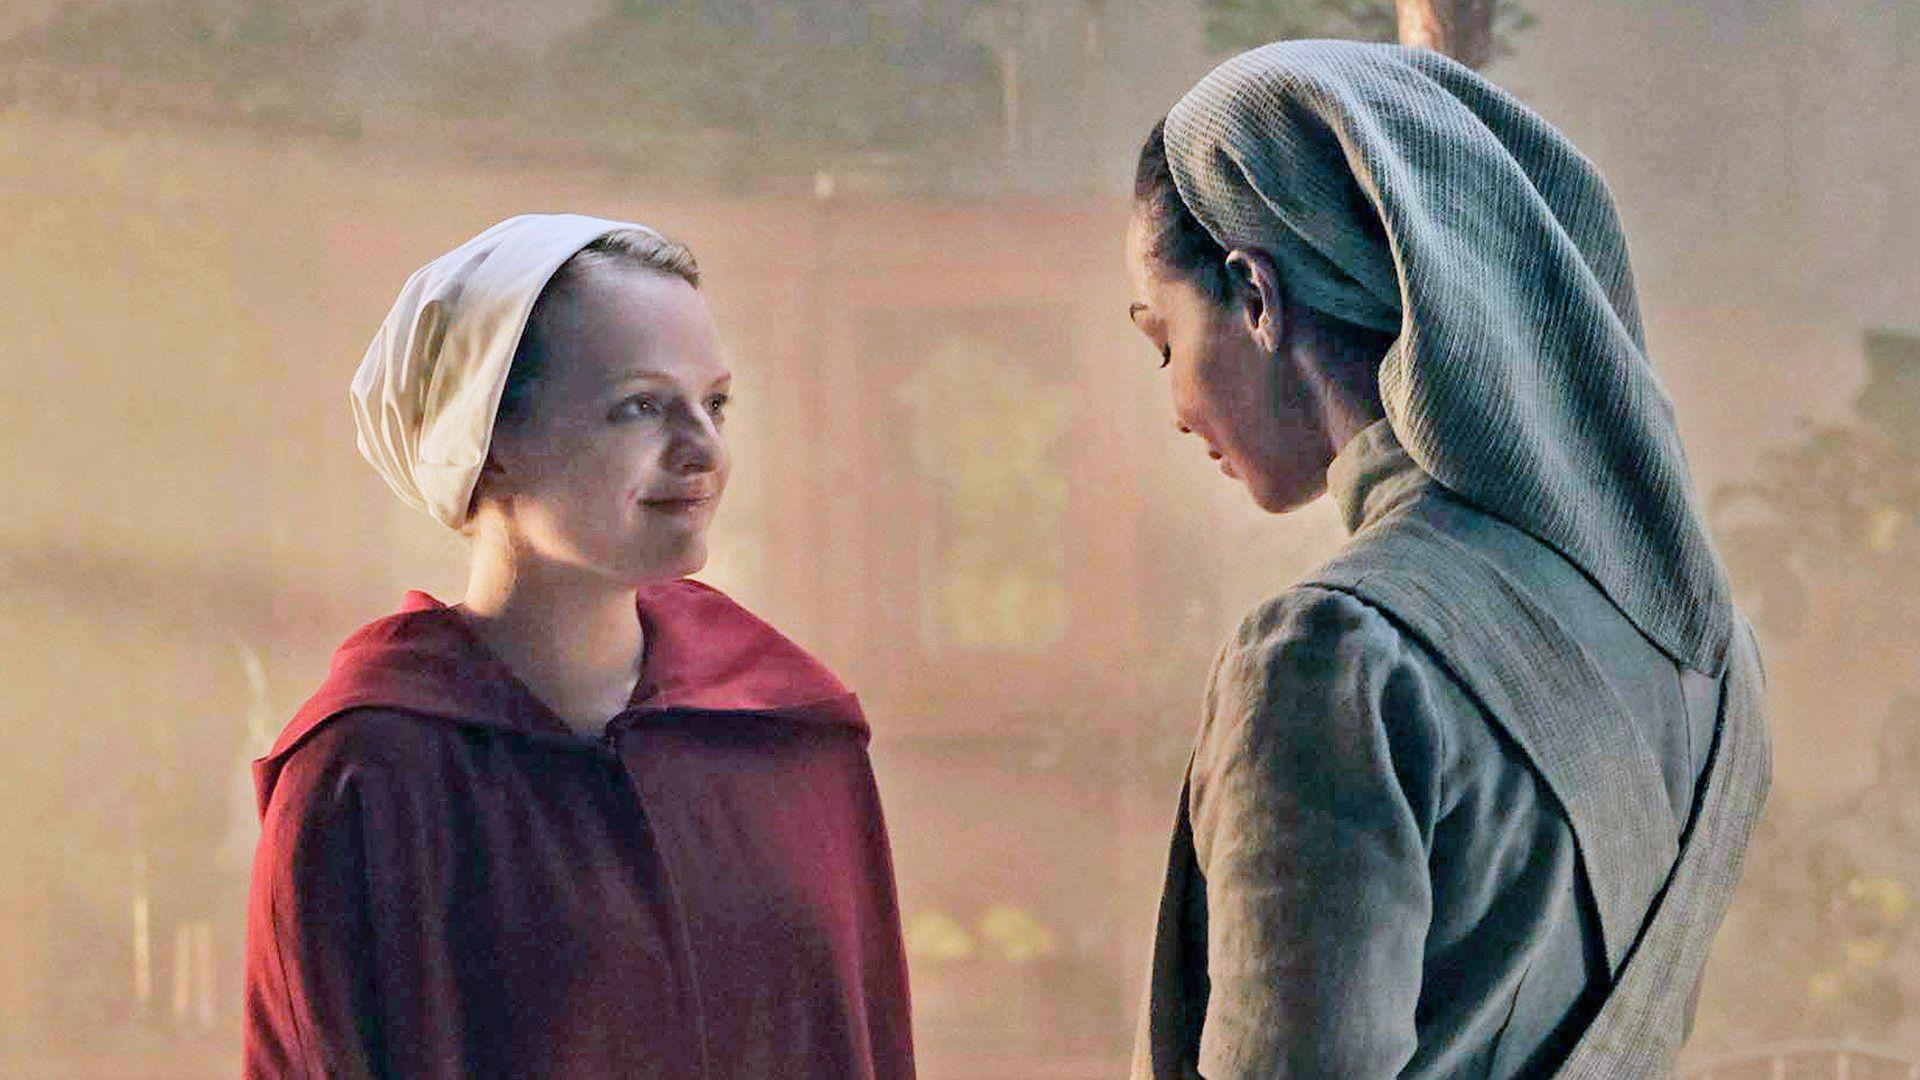 The Handmaid's Tale - Episode Guide - All 4